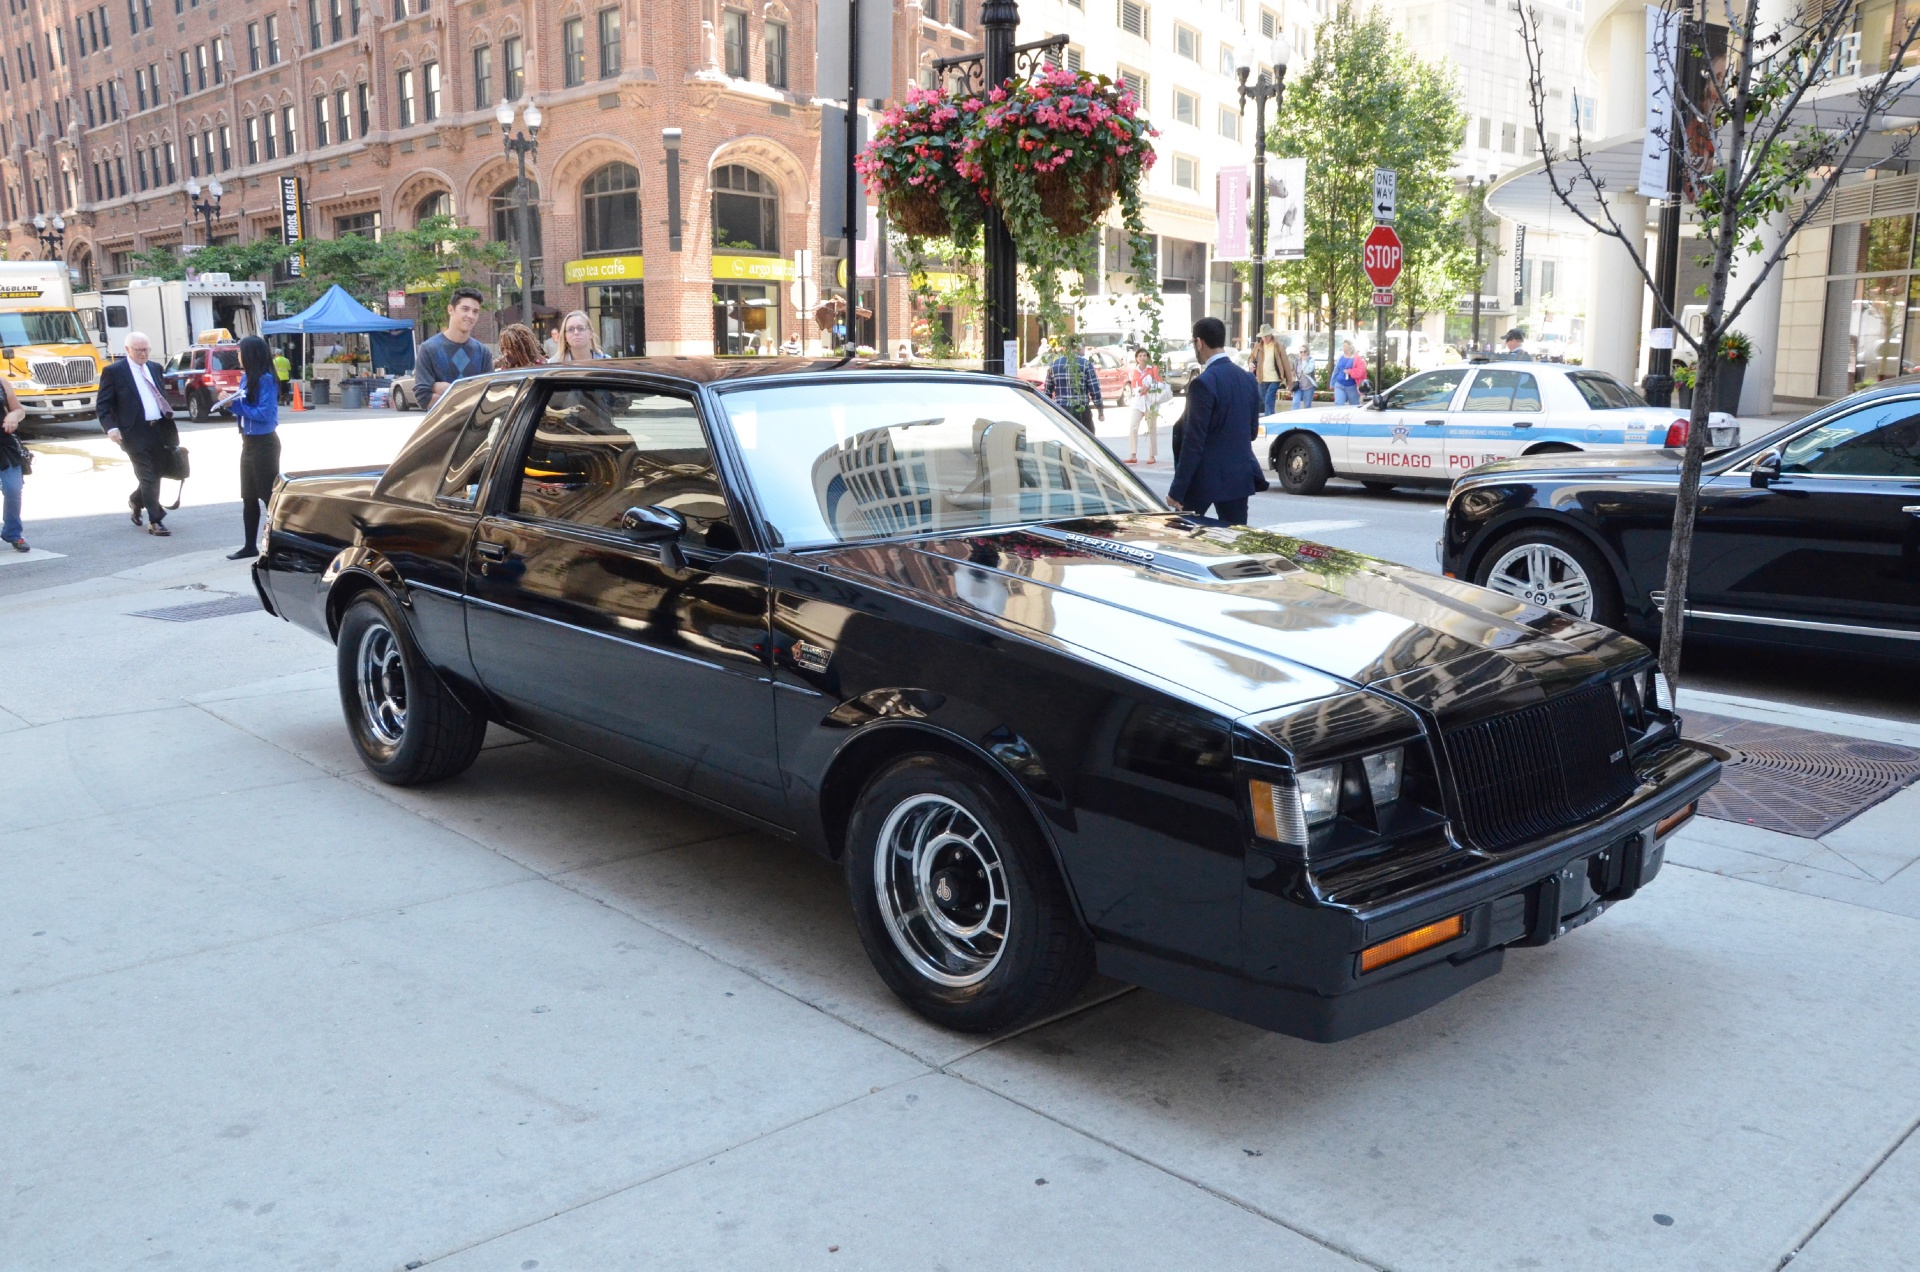 Buick Grand National Stock For Sale Near Chicago IL - Chicago buick dealer